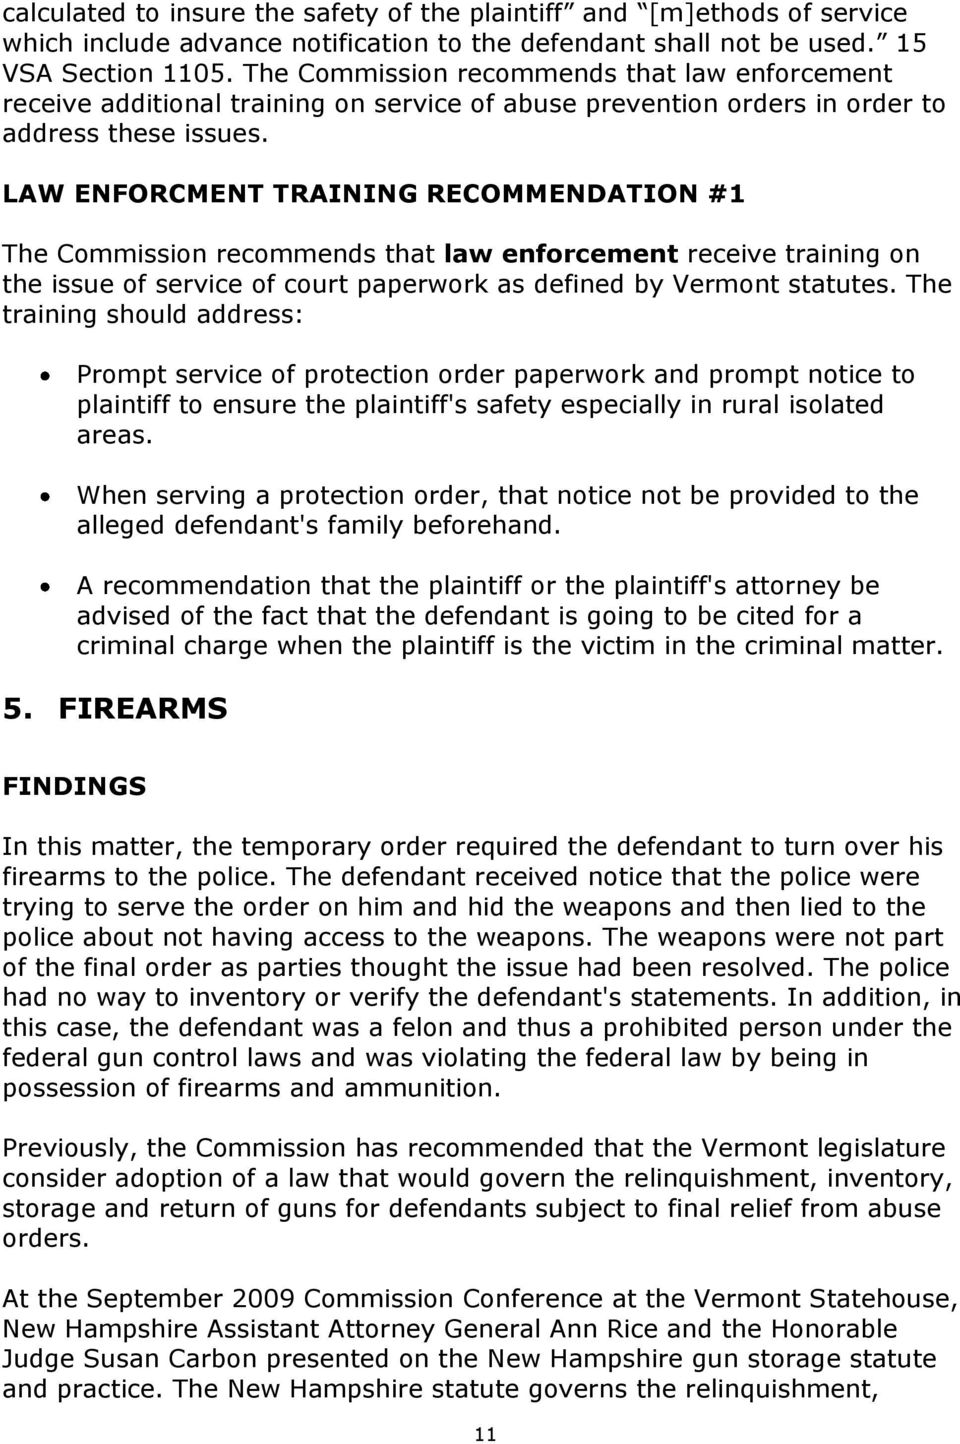 LAW ENFORCMENT TRAINING RECOMMENDATION #1 The Commission recommends that law enforcement receive training on the issue of service of court paperwork as defined by Vermont statutes.